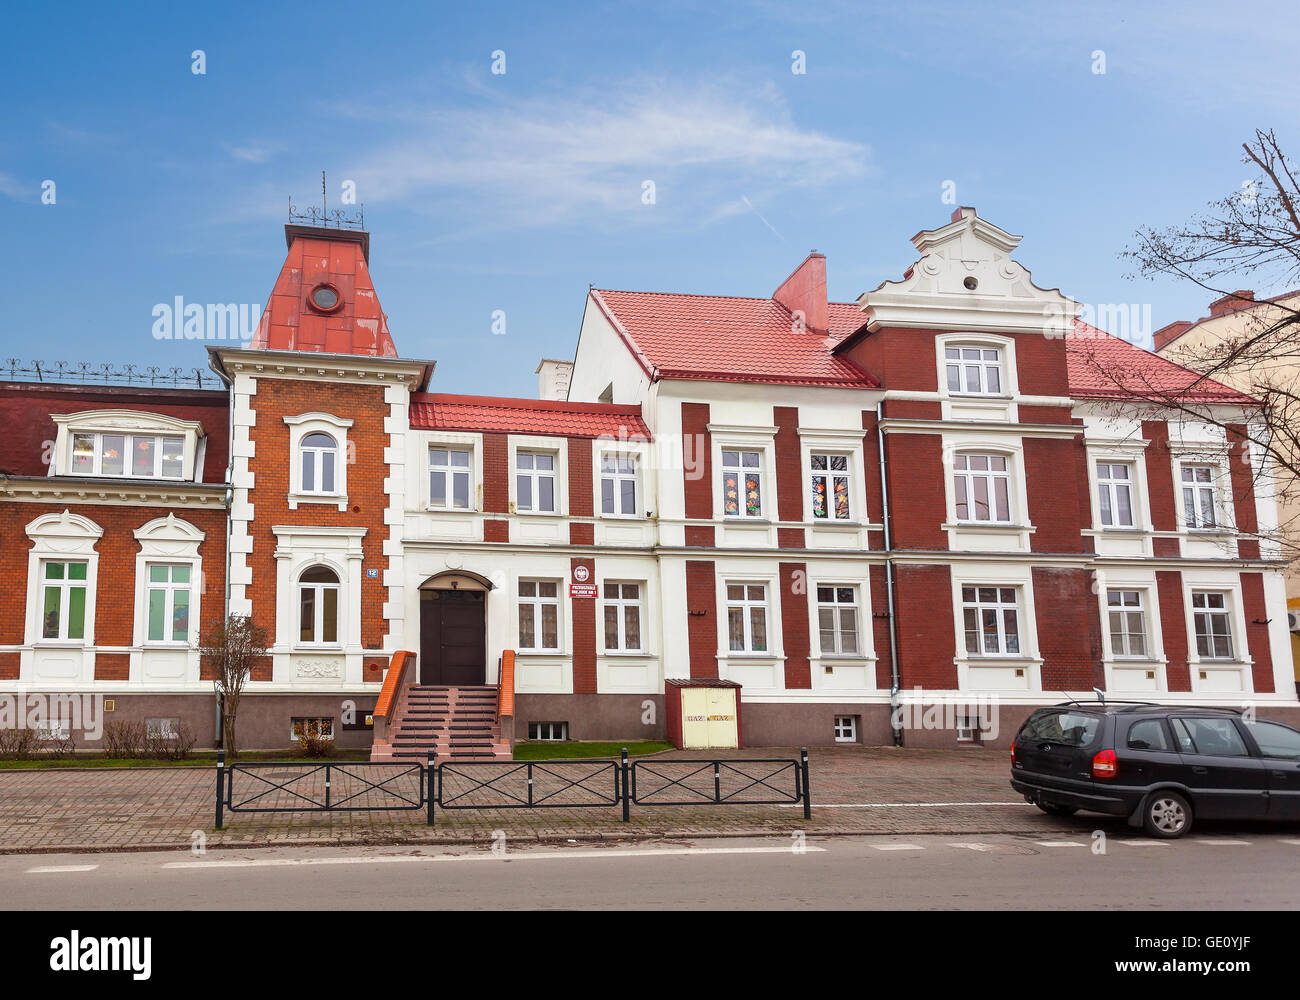 Bialogard, Poland - November 27, 2014: Public kindergarten nr 1 located in historic building in Bialogard. - Stock Image